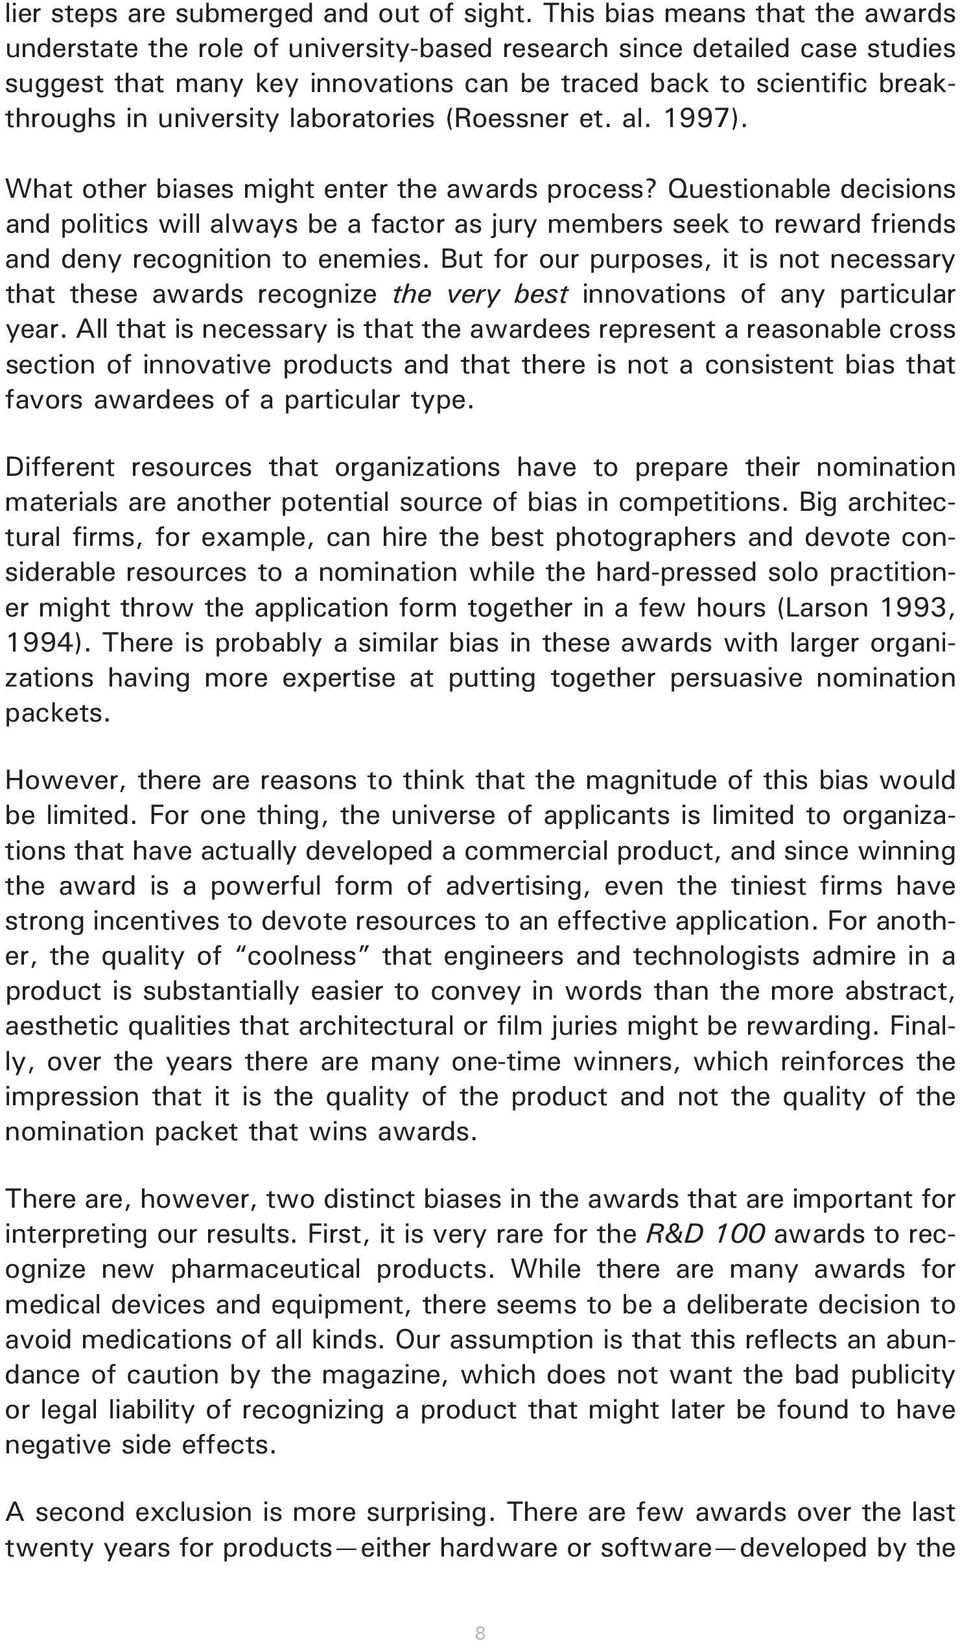 university laboratories (Roessner et. al. 997). What other biases might enter the awards process?